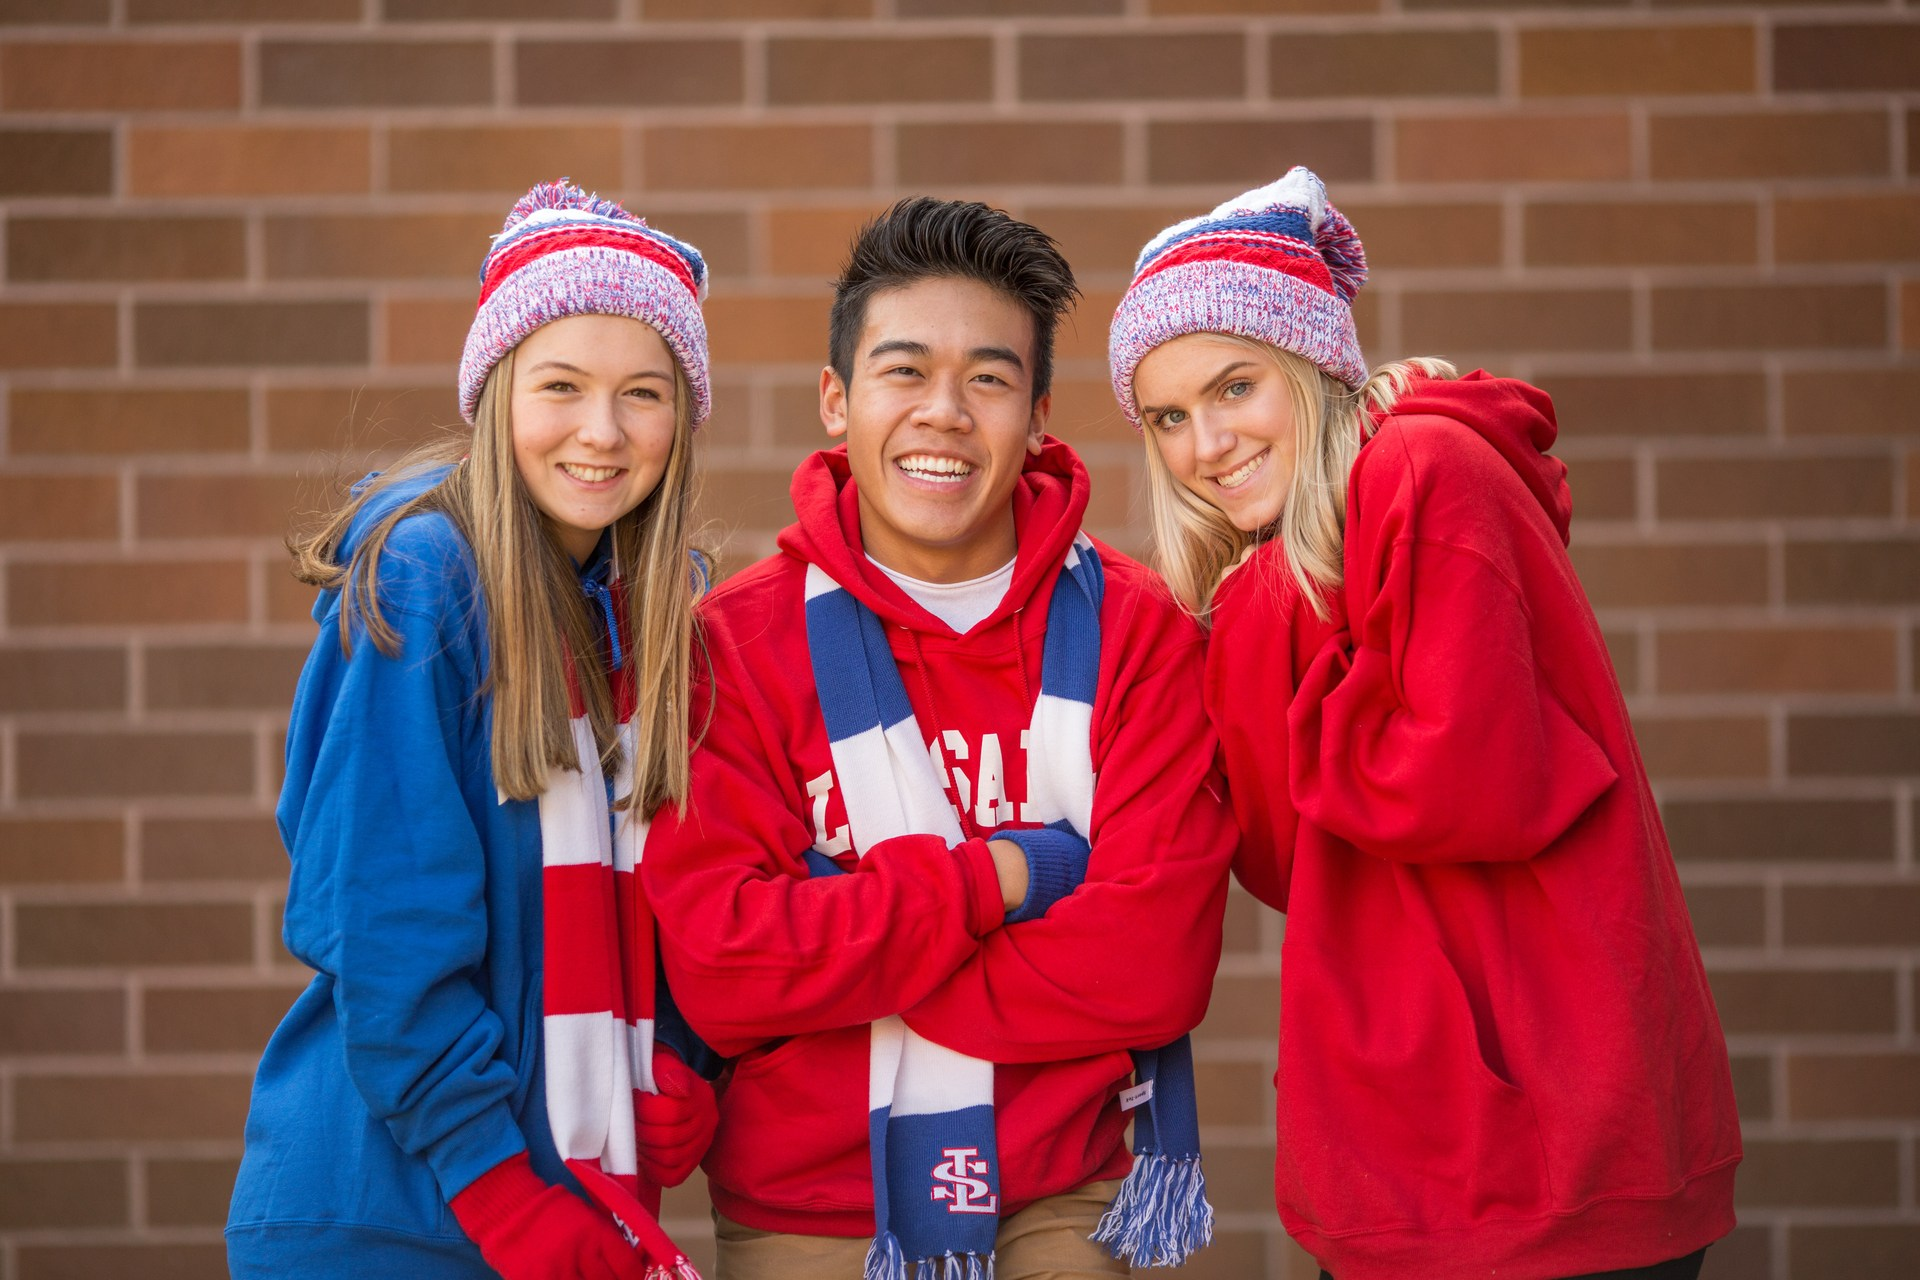 Three smiling students